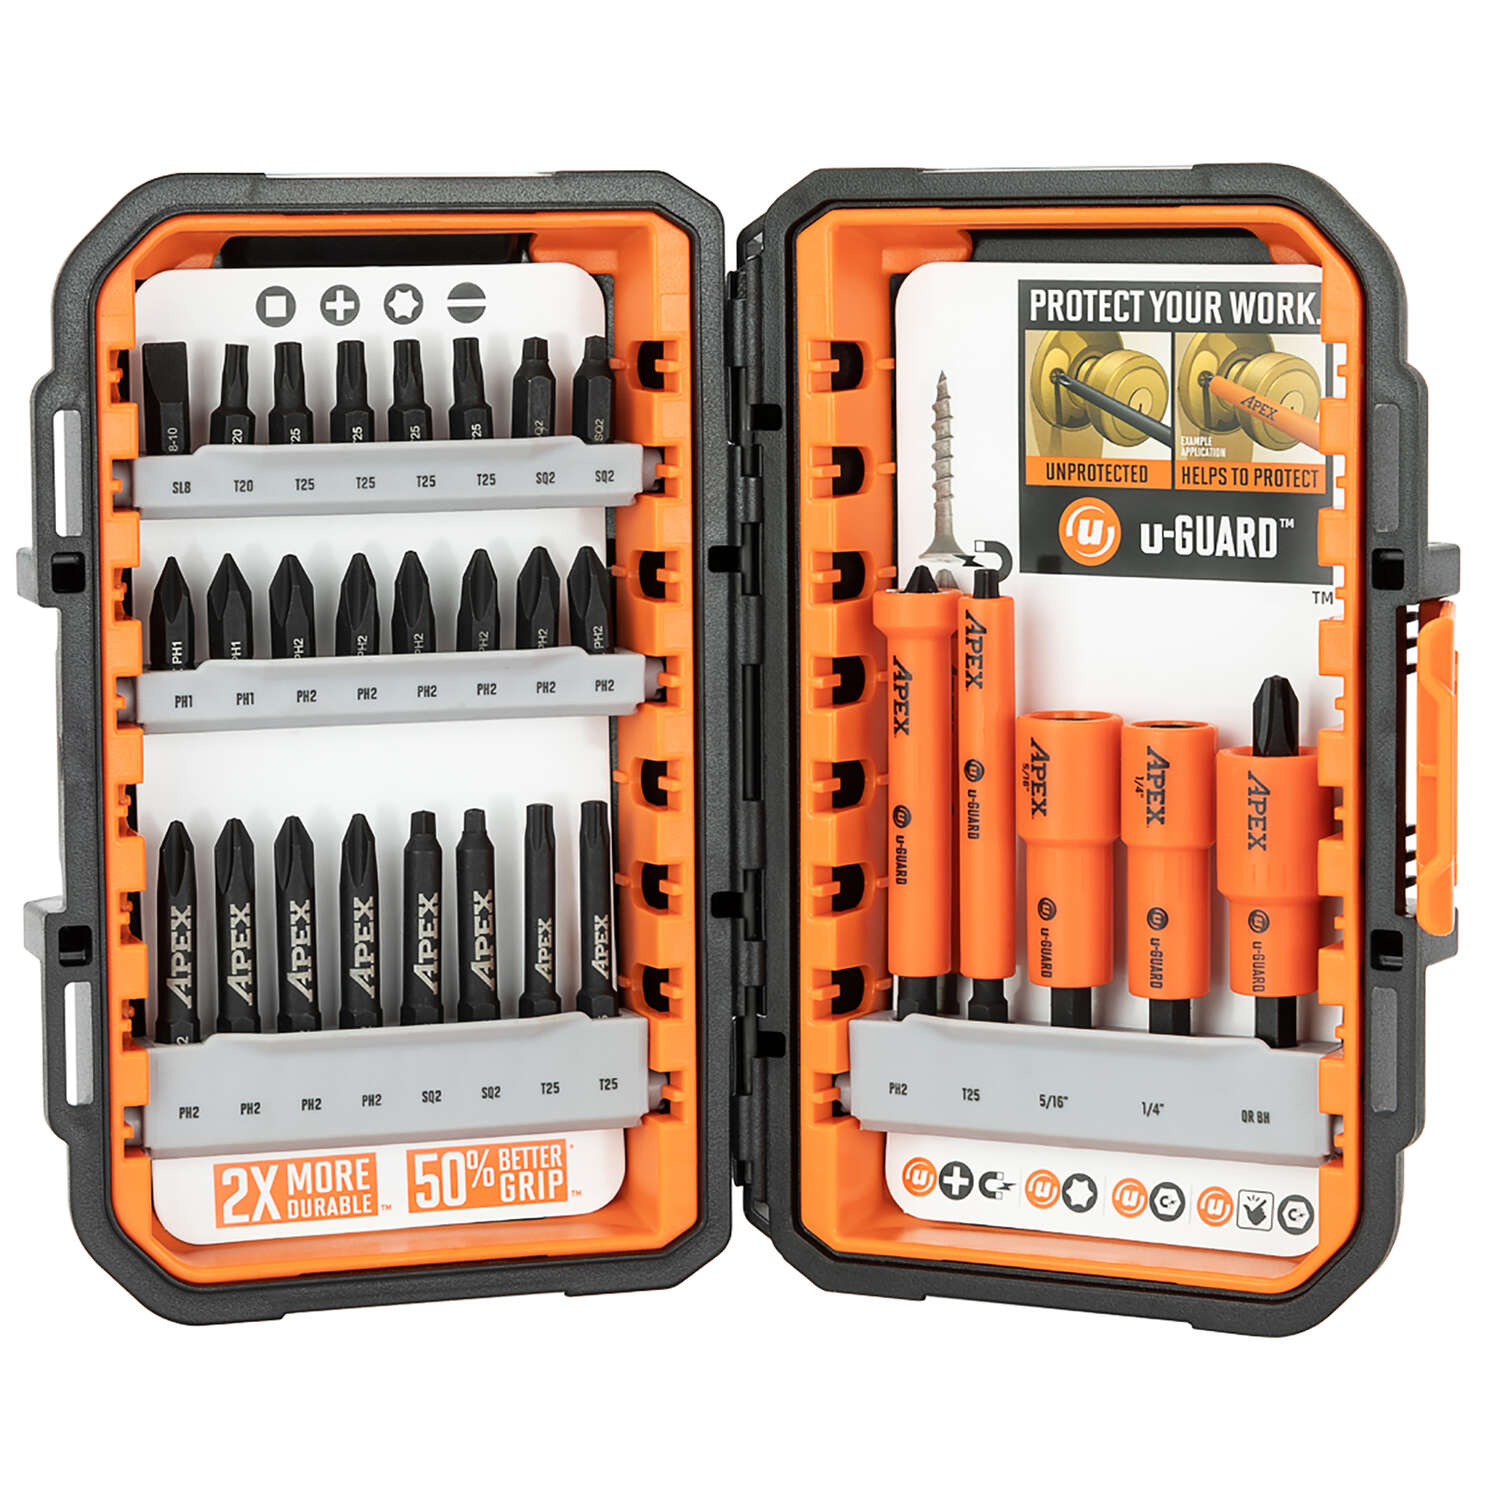 Apex  u-GUARD  Drive and Fasten Bit Set  Heat-Treated Steel  30 pc.